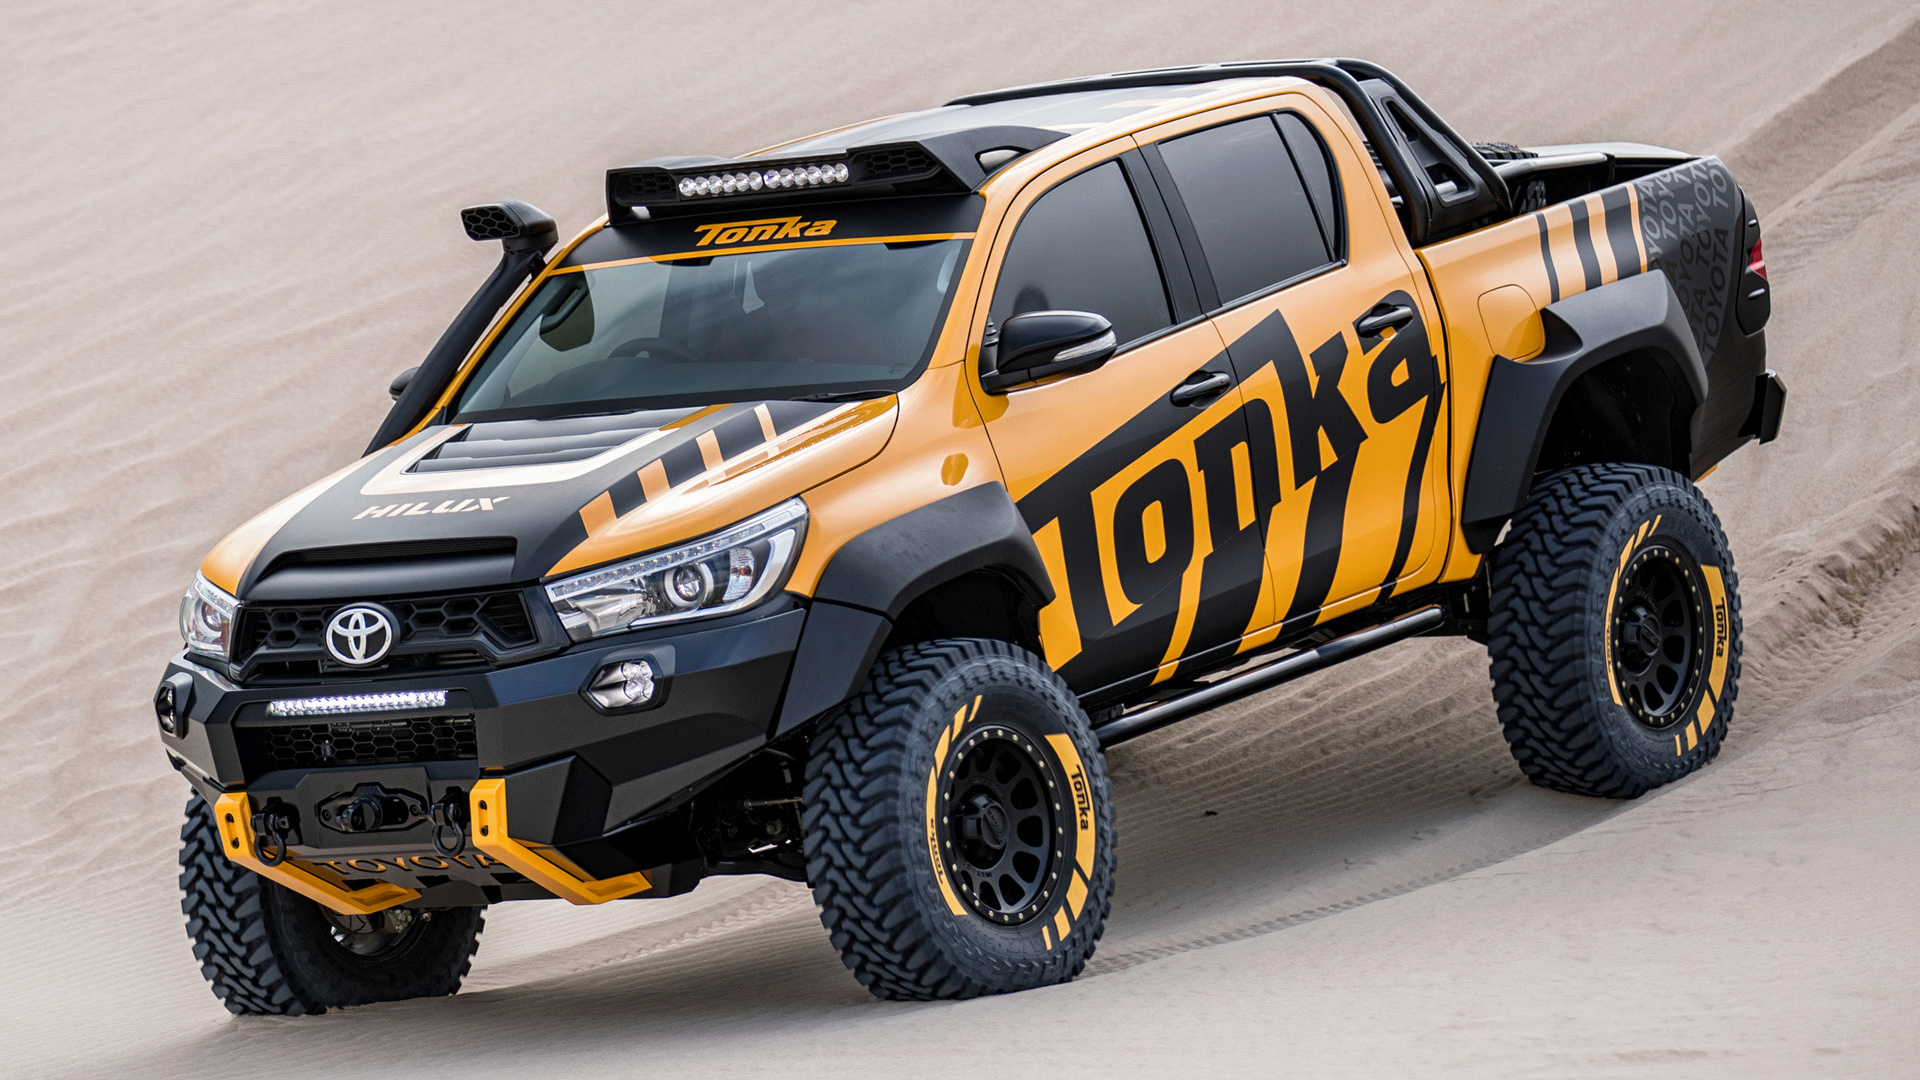 2017 Toyota Hilux Tonka Concept   Wallpapers and HD Images Car Pixel 1920x1080